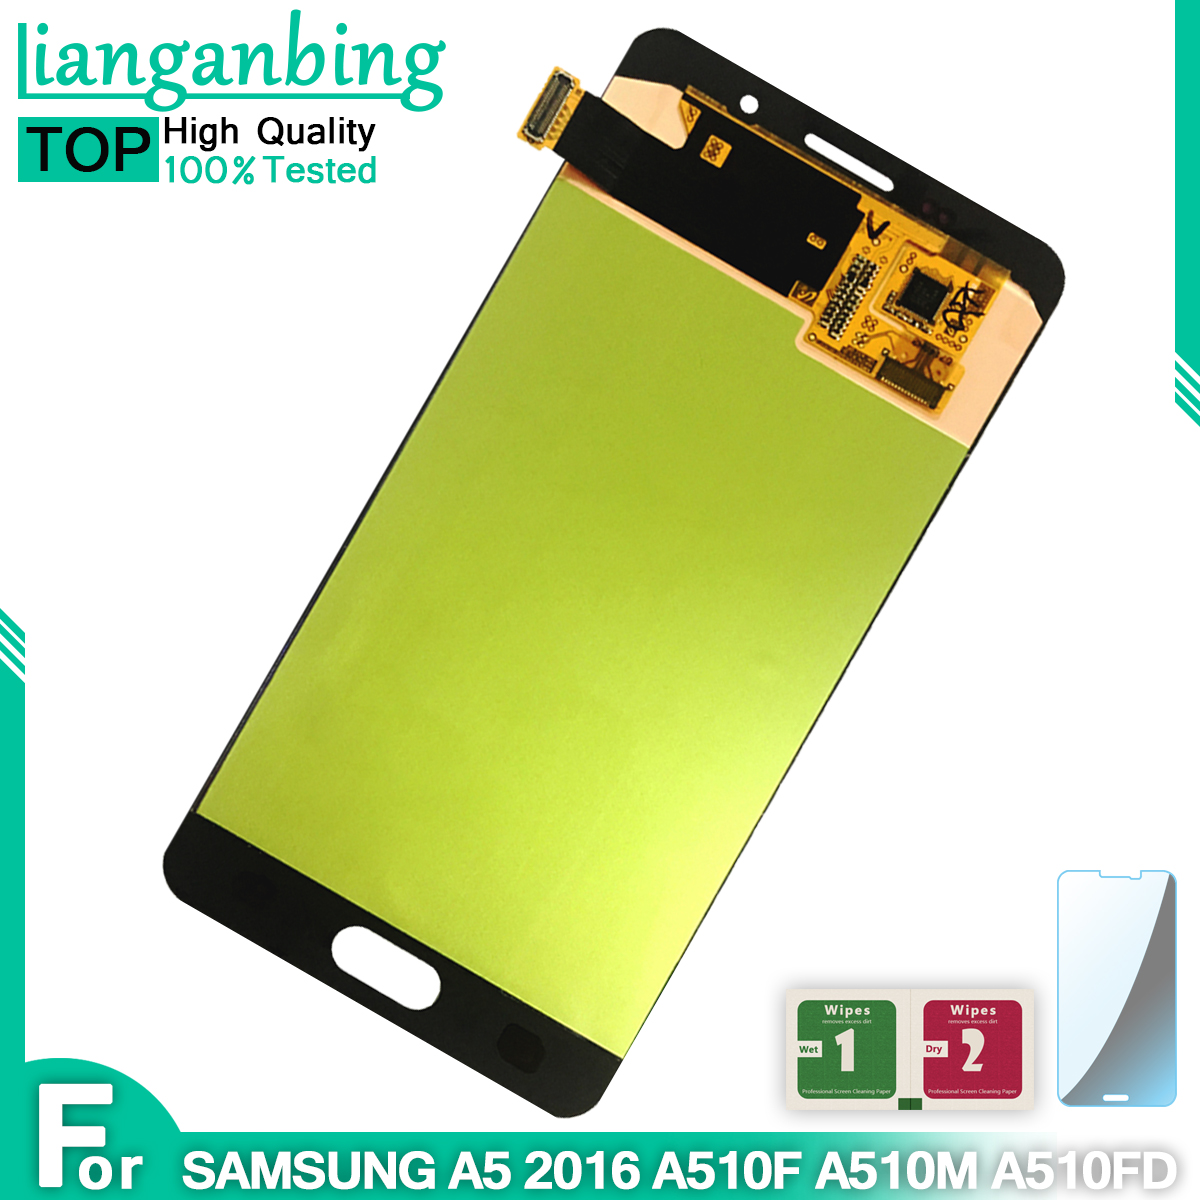 New Super AMOLED LCD A5 2016 A510F A510M A510FD A510  Display 100% Tested Working Touch Screen Assembly For Samsung Galaxy A510